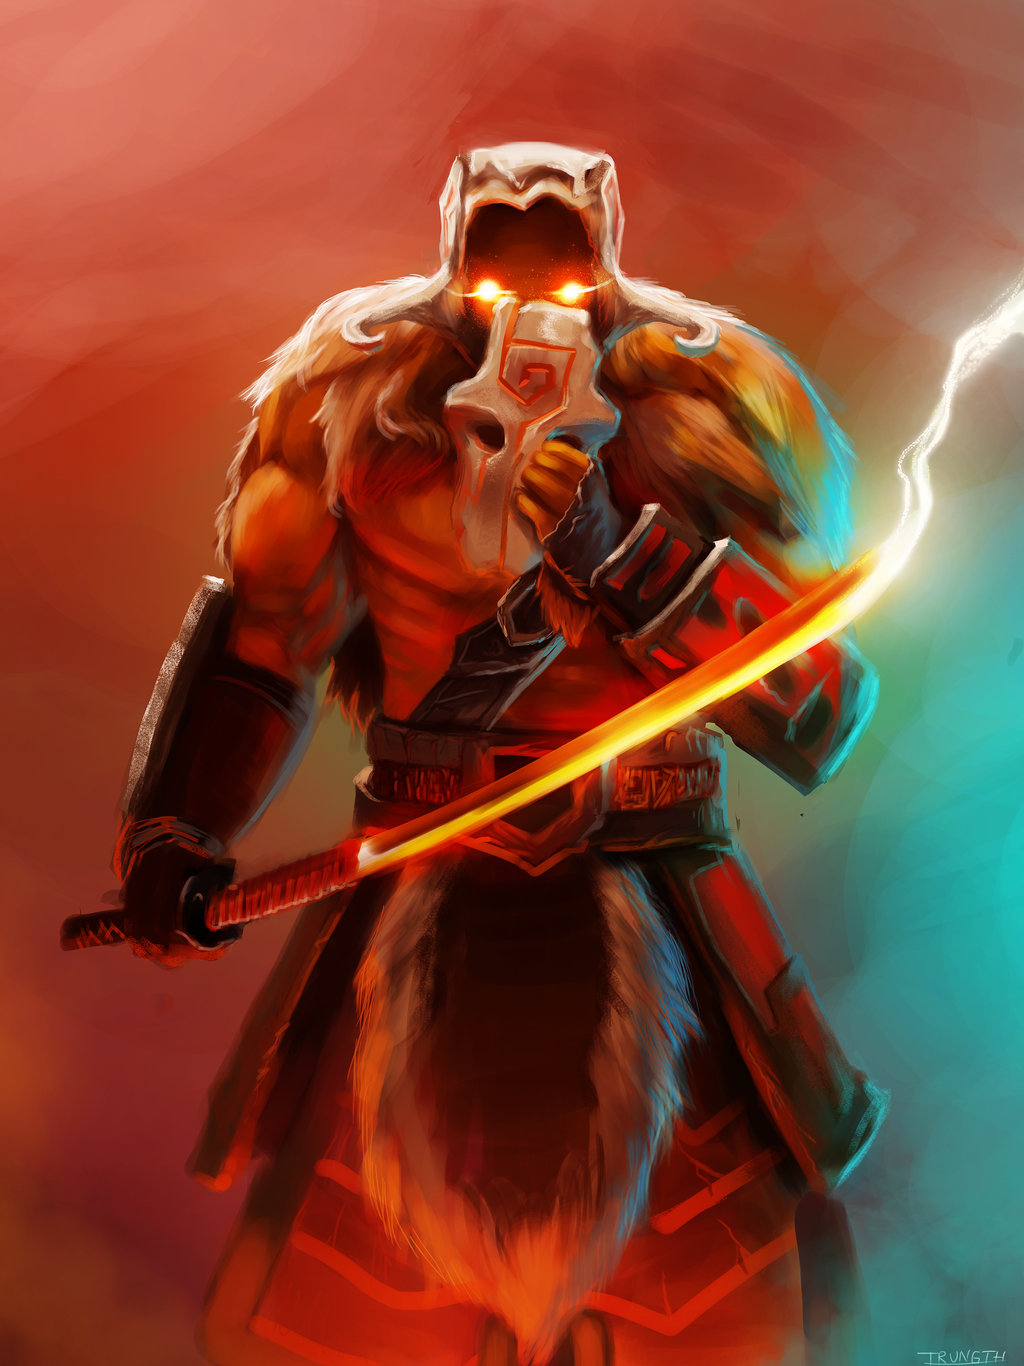 juggernaut-yunero-blademaster-dota-hero-artwork